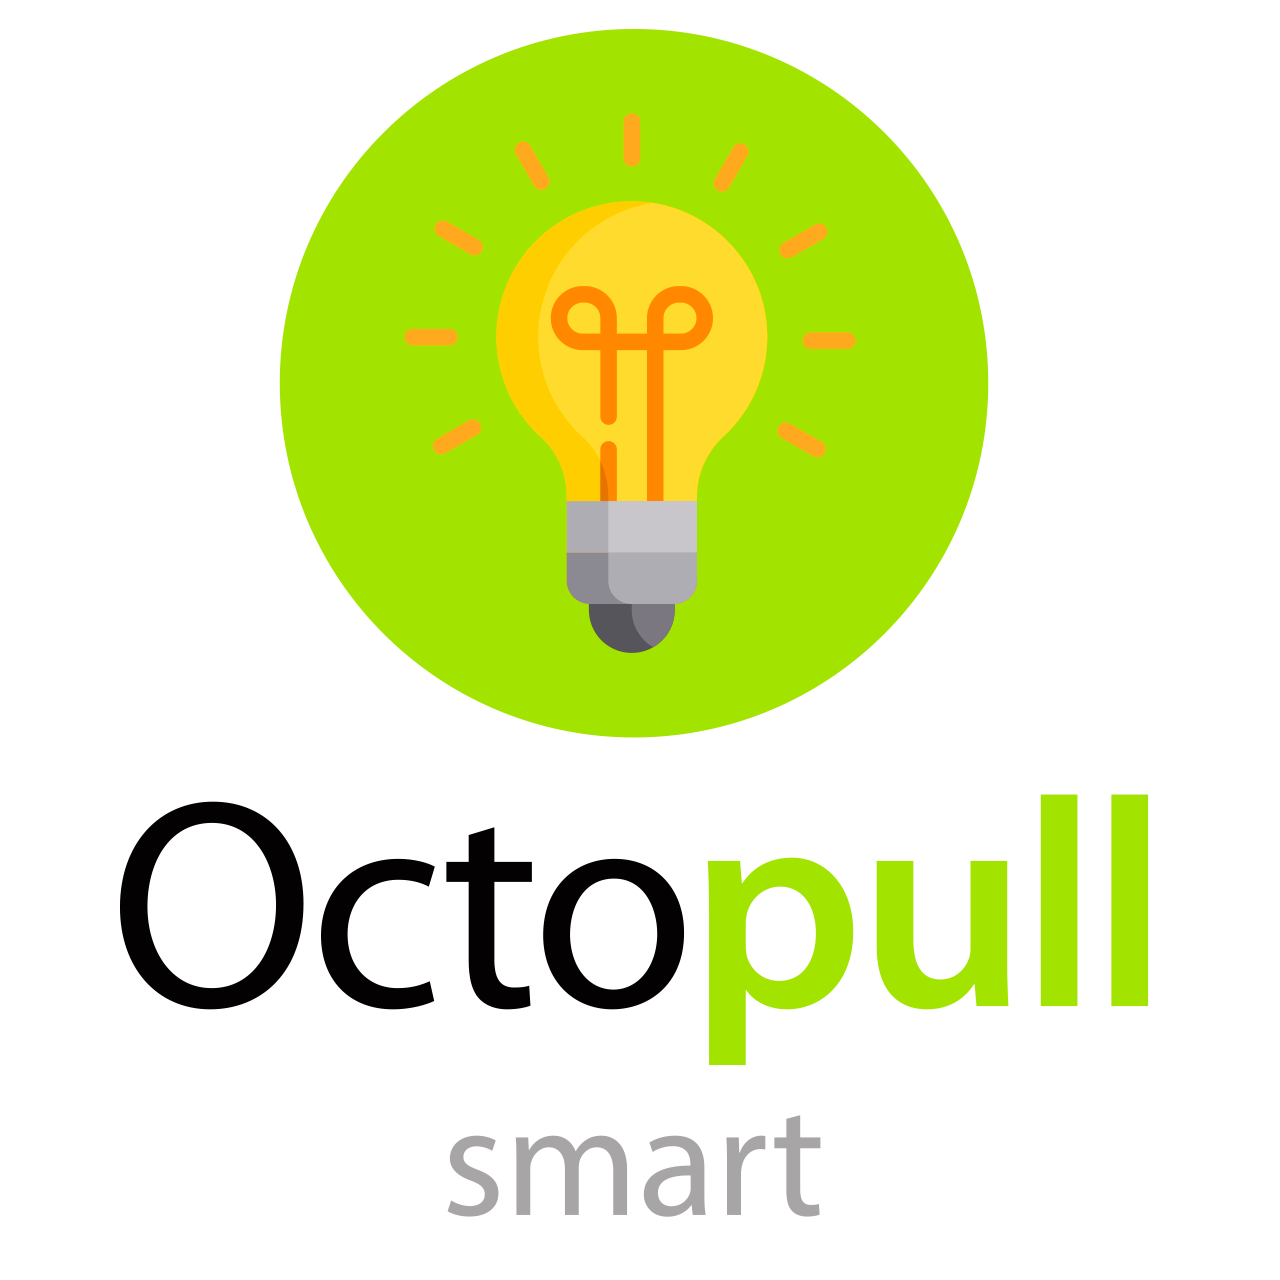 logo-octopull-smart.png